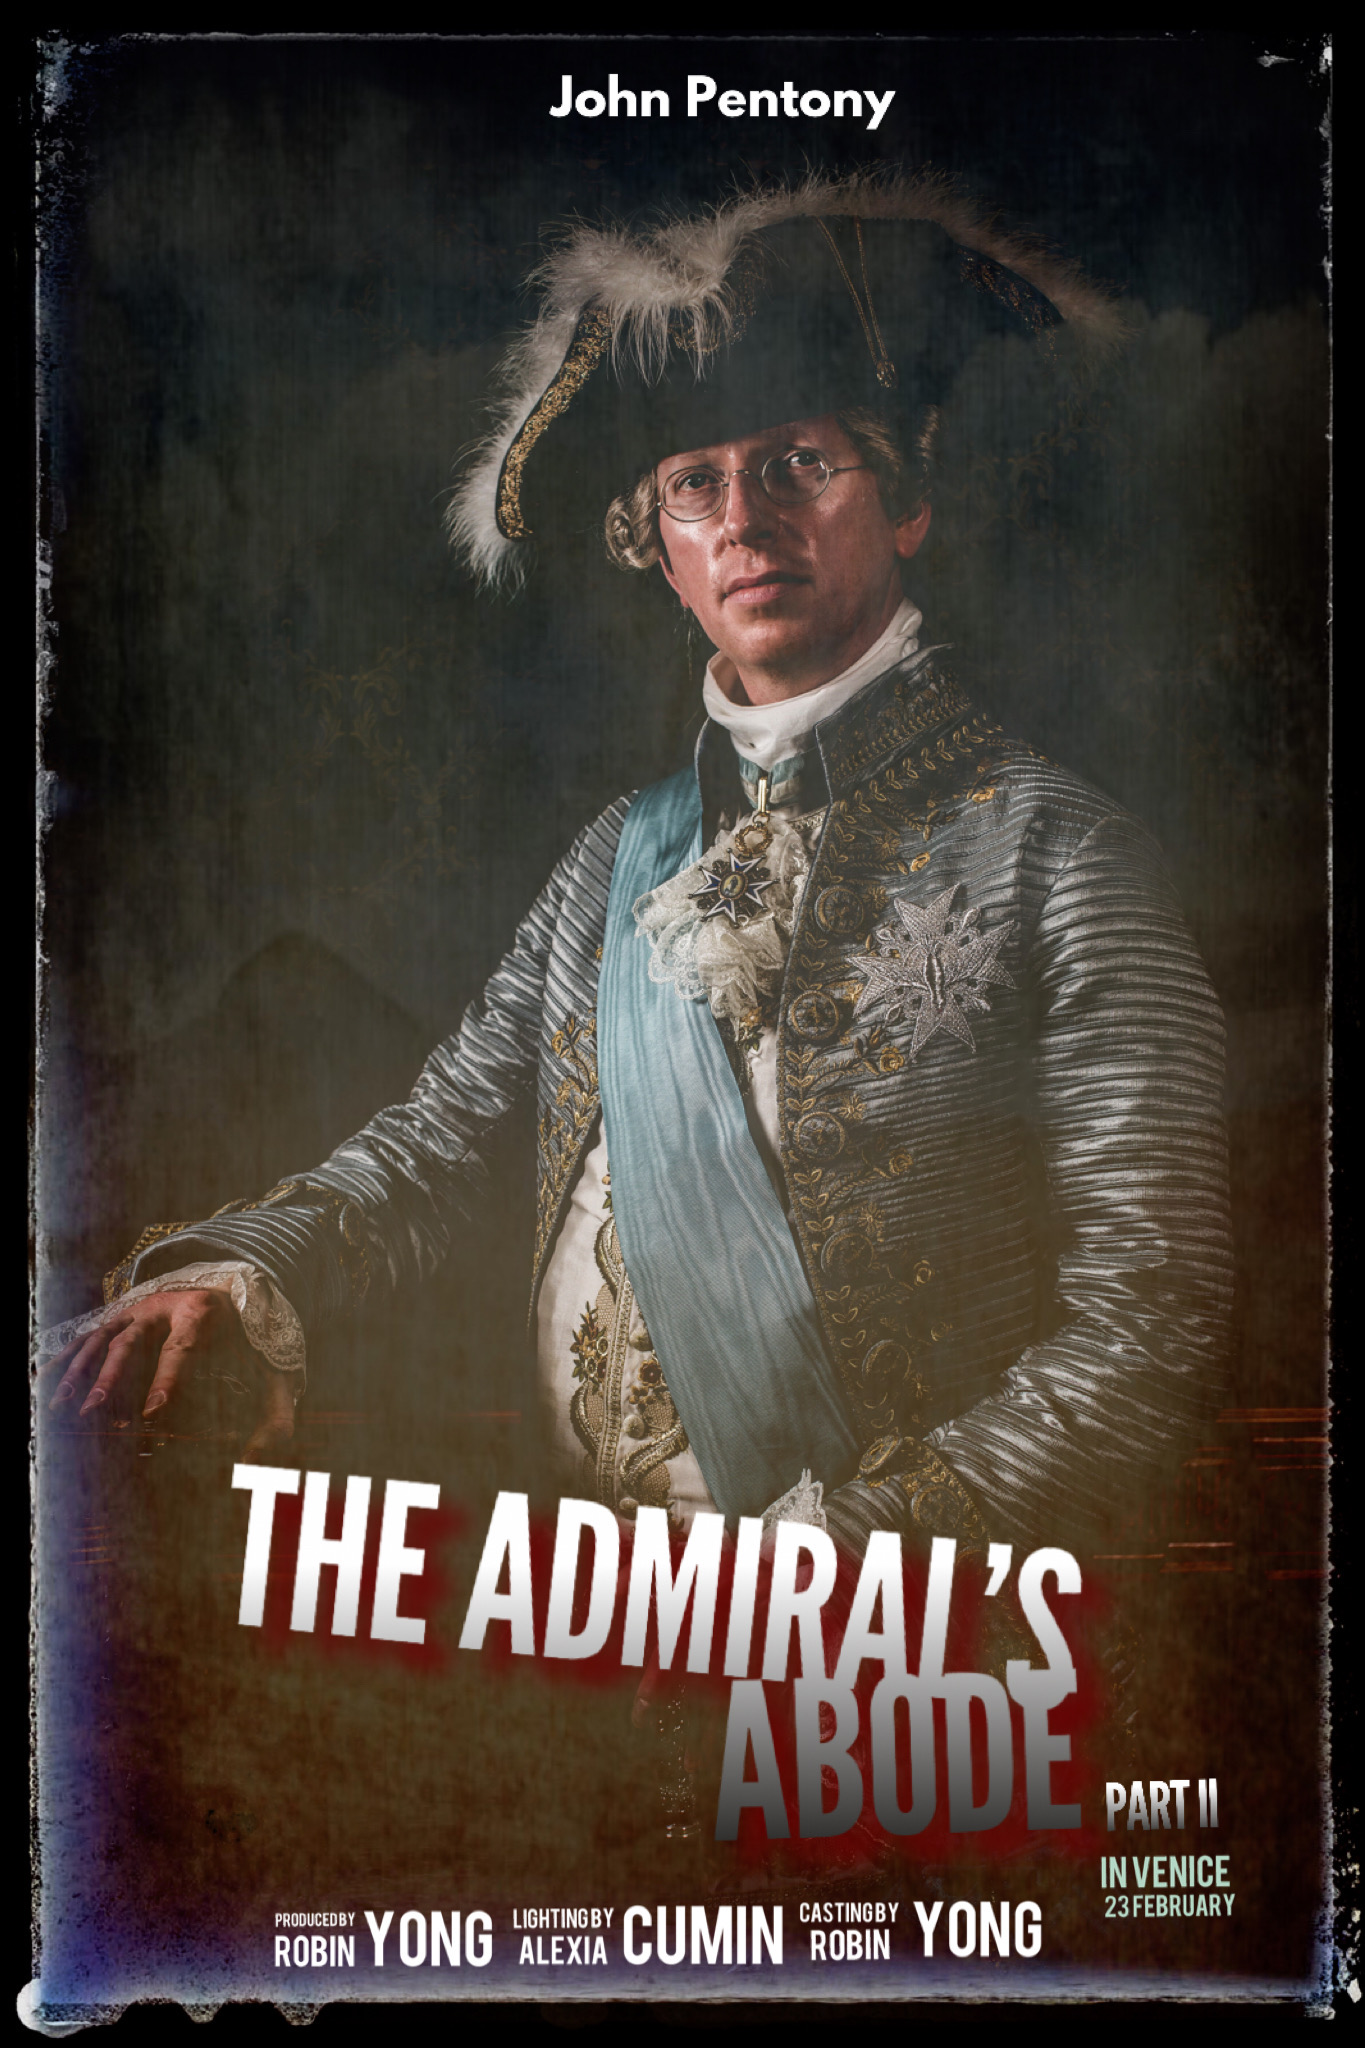 The Admiral's Abode part II